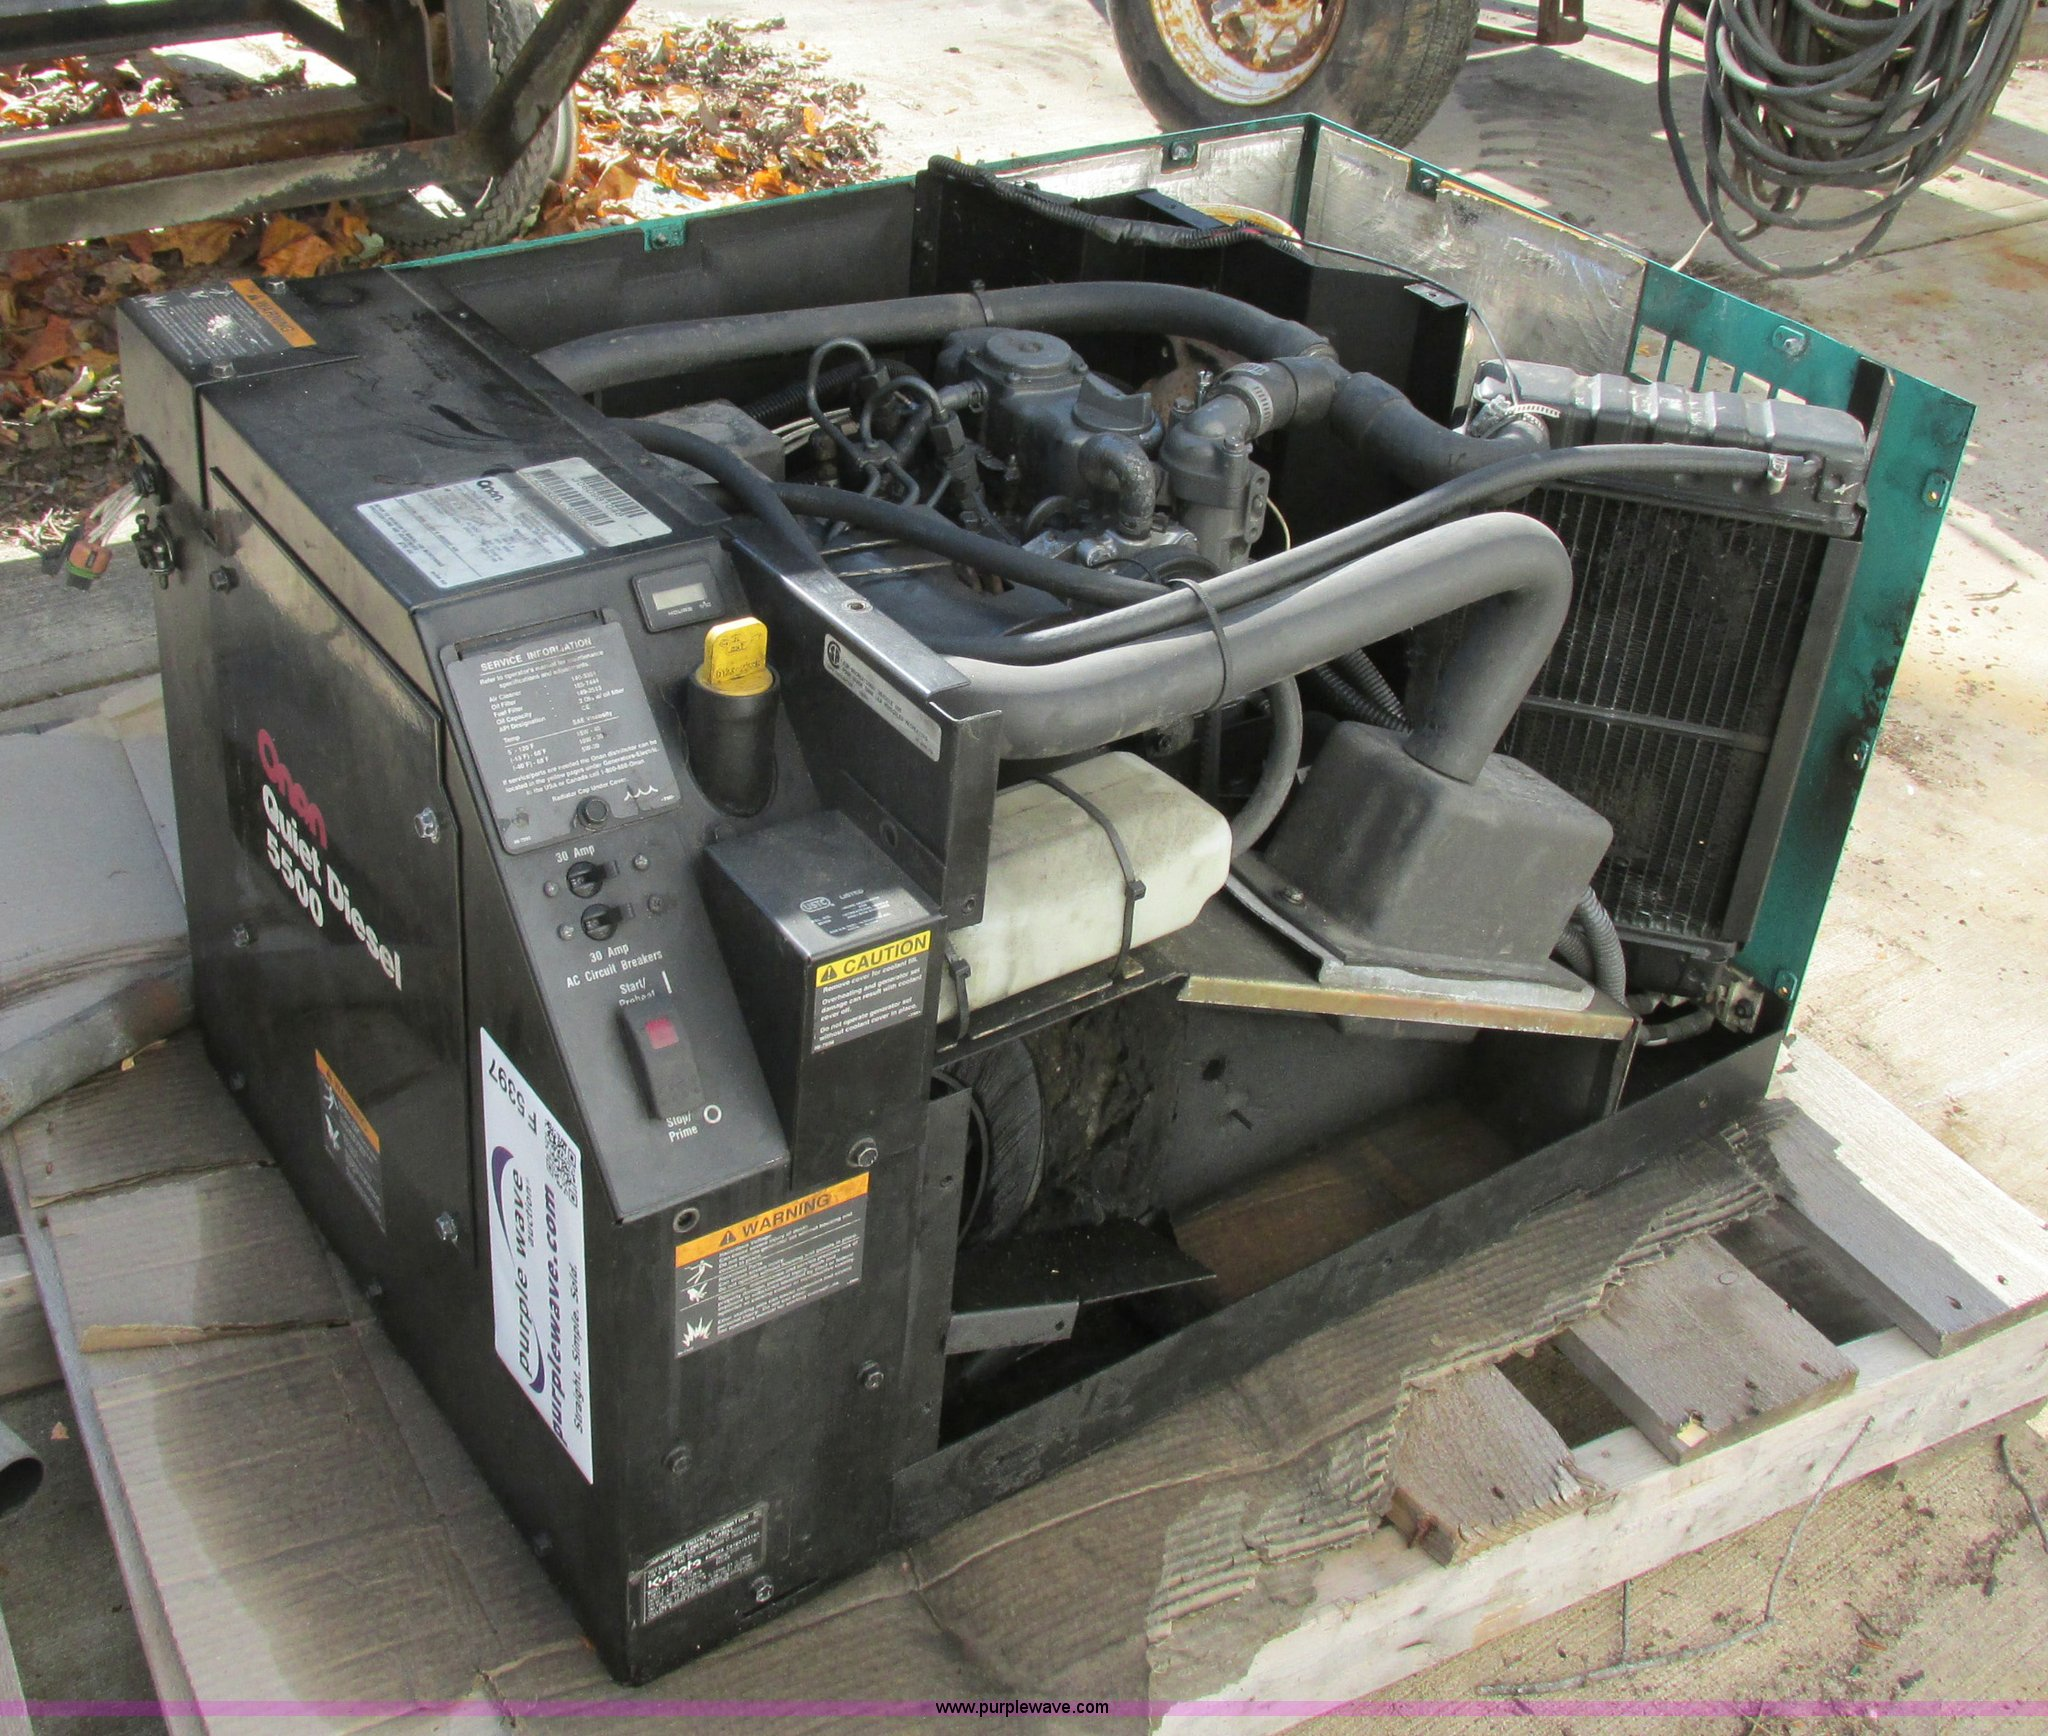 Onan Quiet 5500 generator | Item F5397 | SOLD! December 19 C